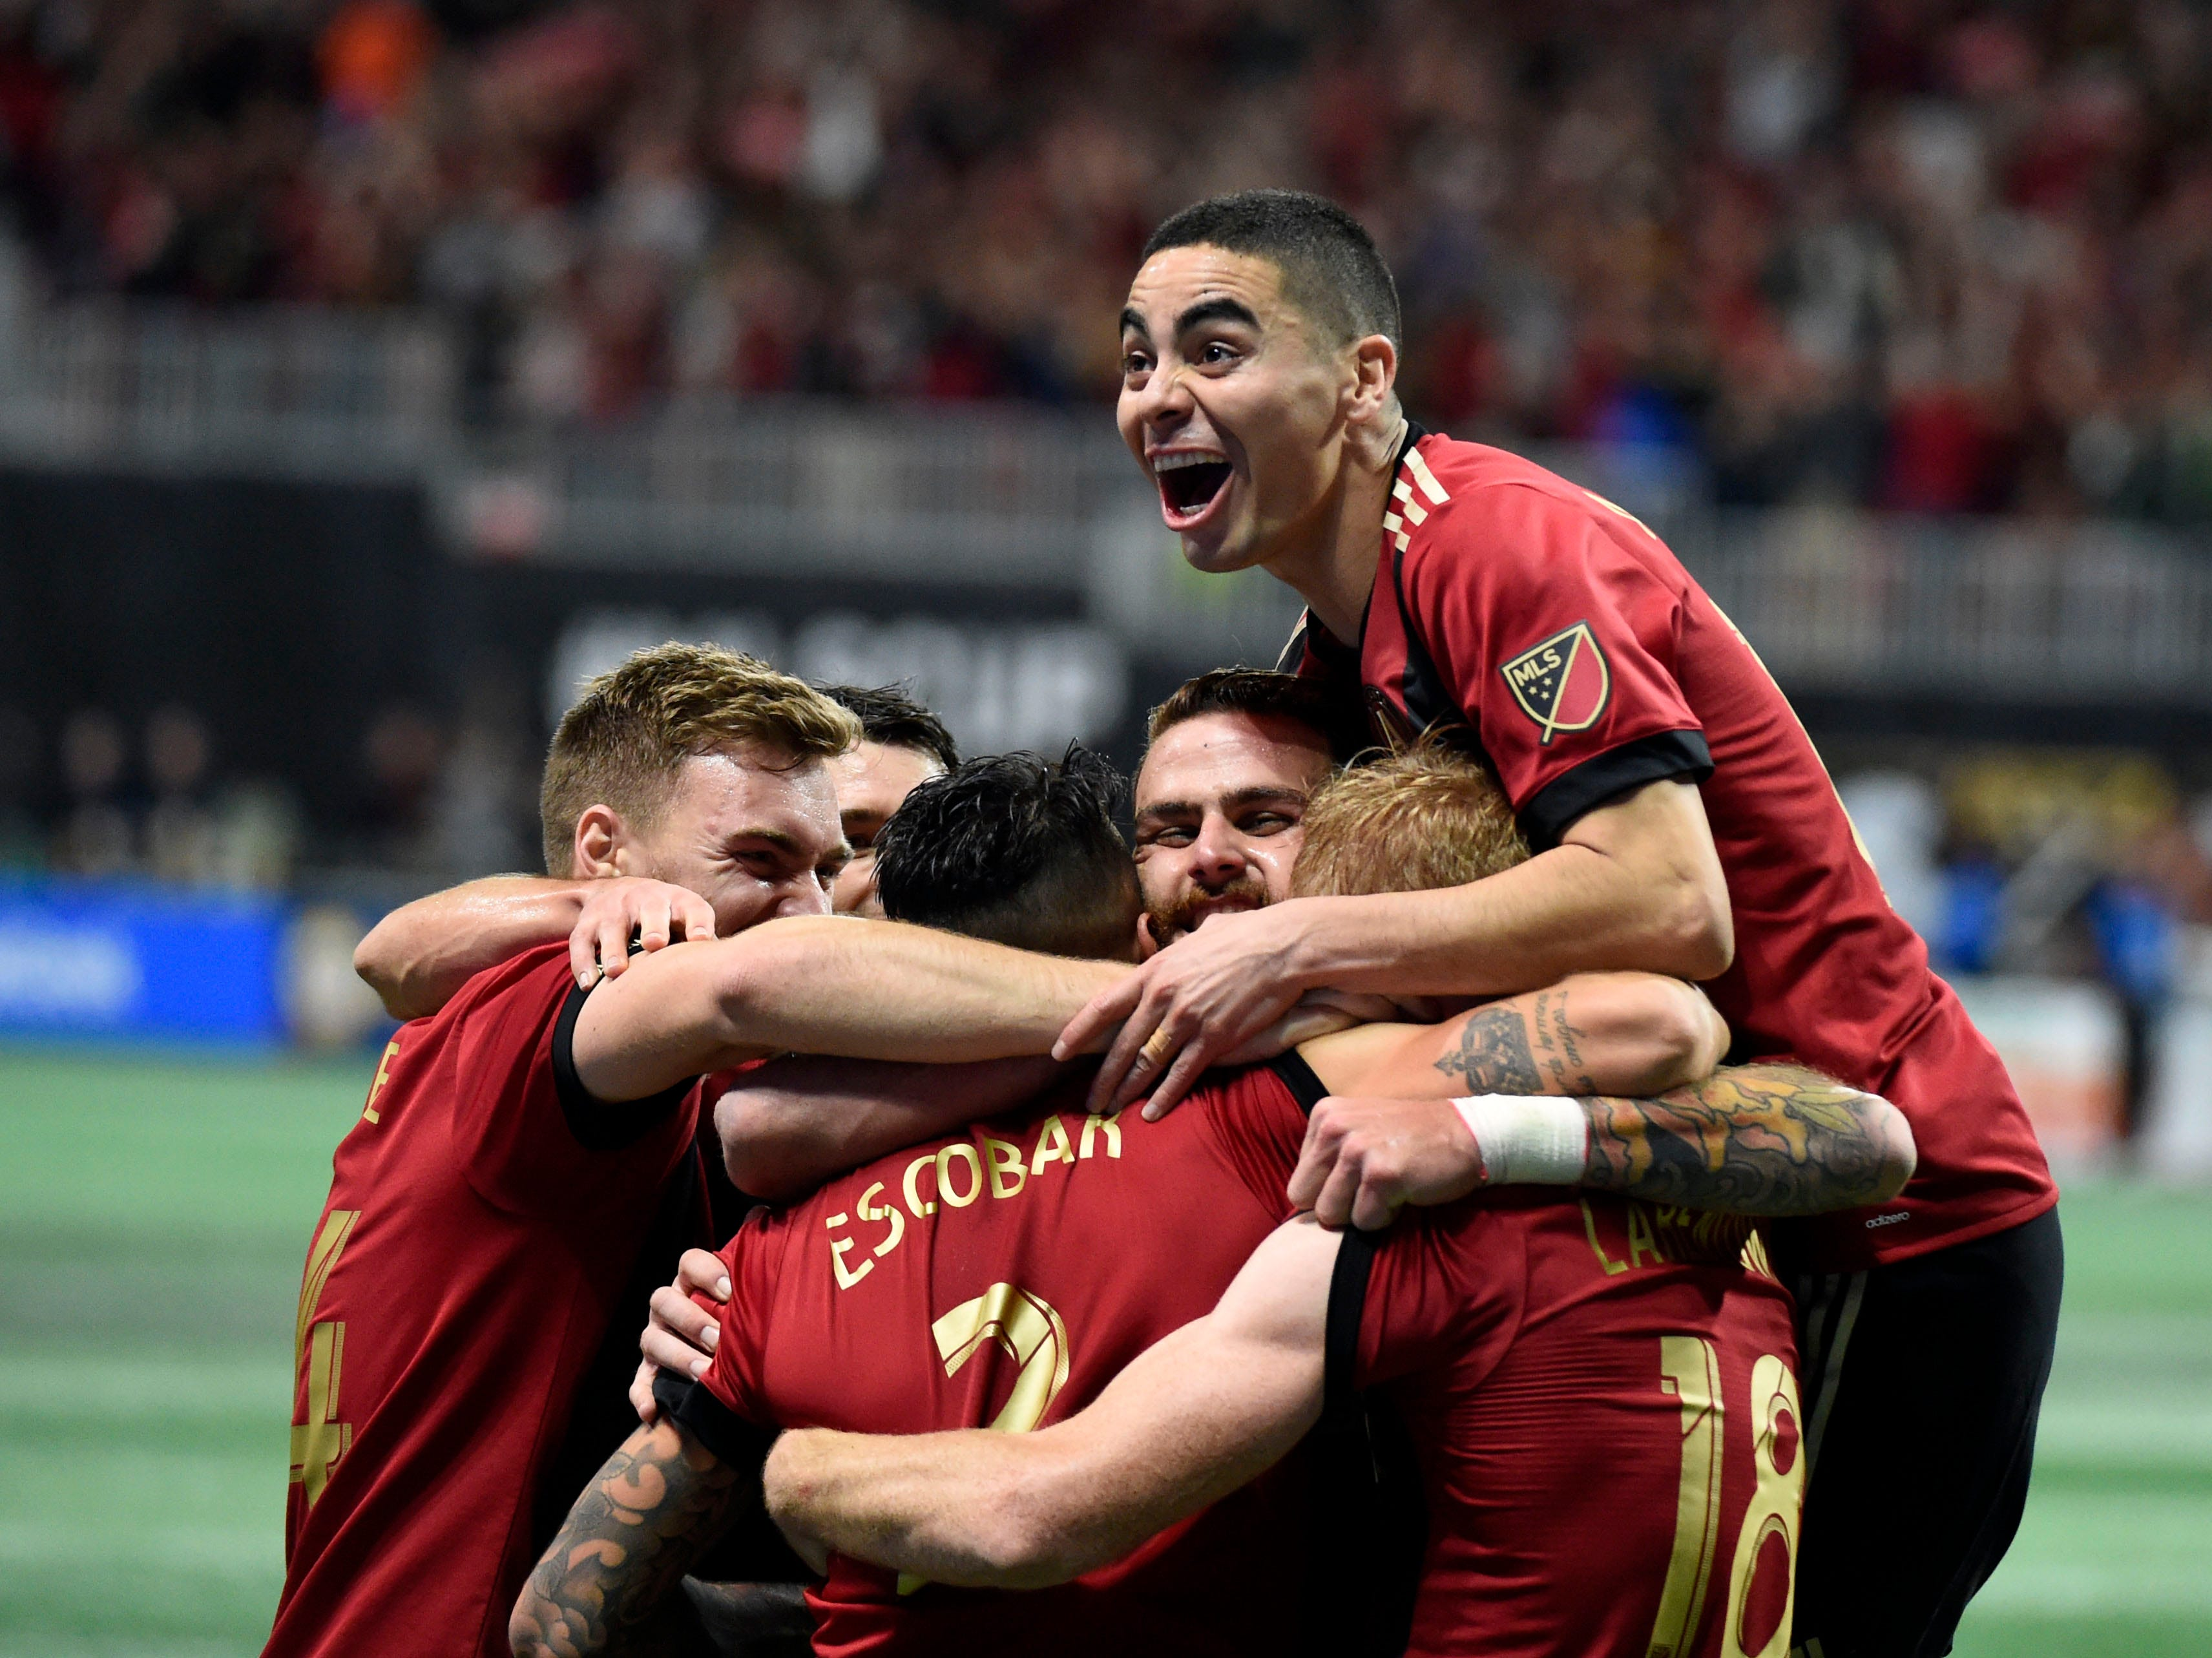 Atlanta United teammates celebrate Franco Escobar's second-half goal in the 2018 MLS Cup at Mercedes-Benz Stadium.